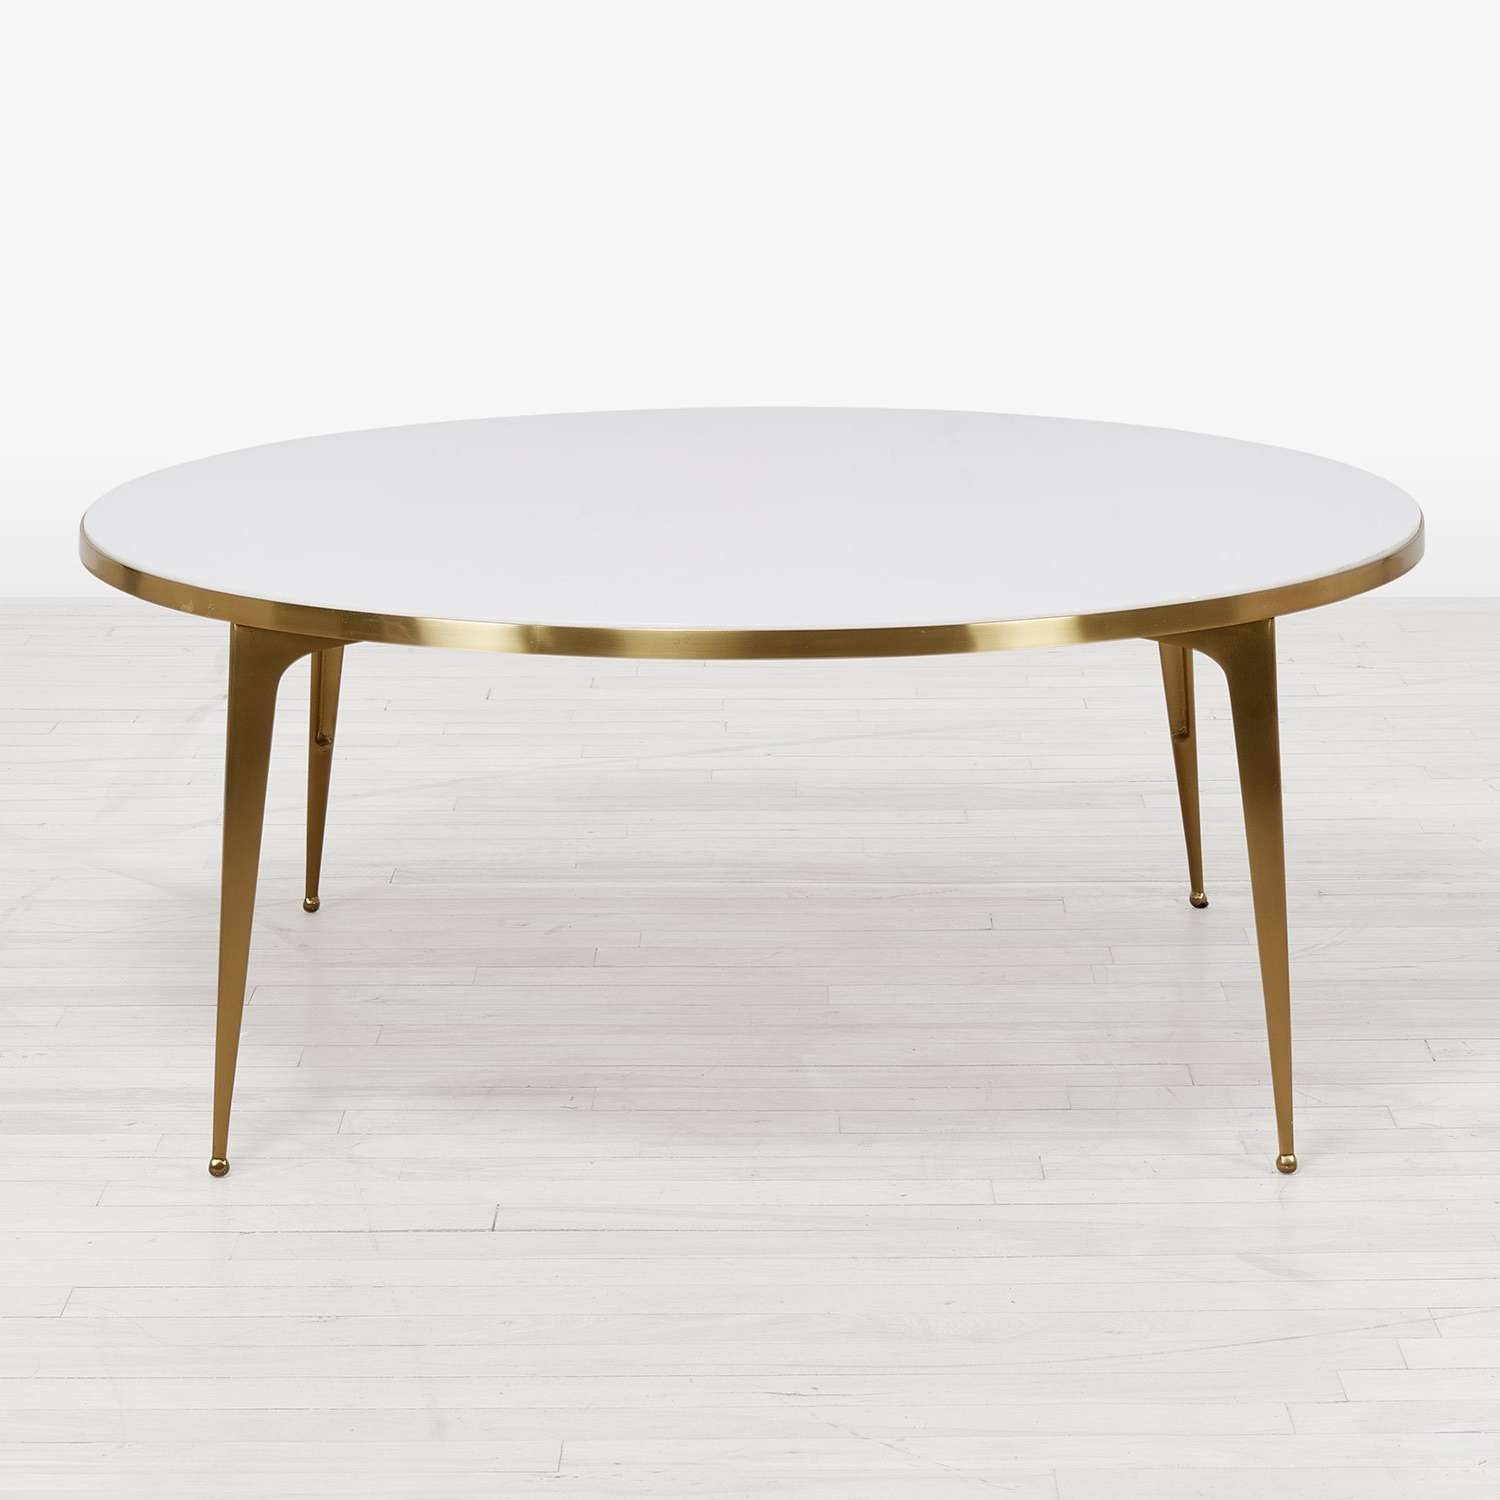 Most Popular Black And Grey Marble Coffee Tables In Coffee Tables : Mirrored Coffee Table Grey Marble Round Brass Sets (View 11 of 20)